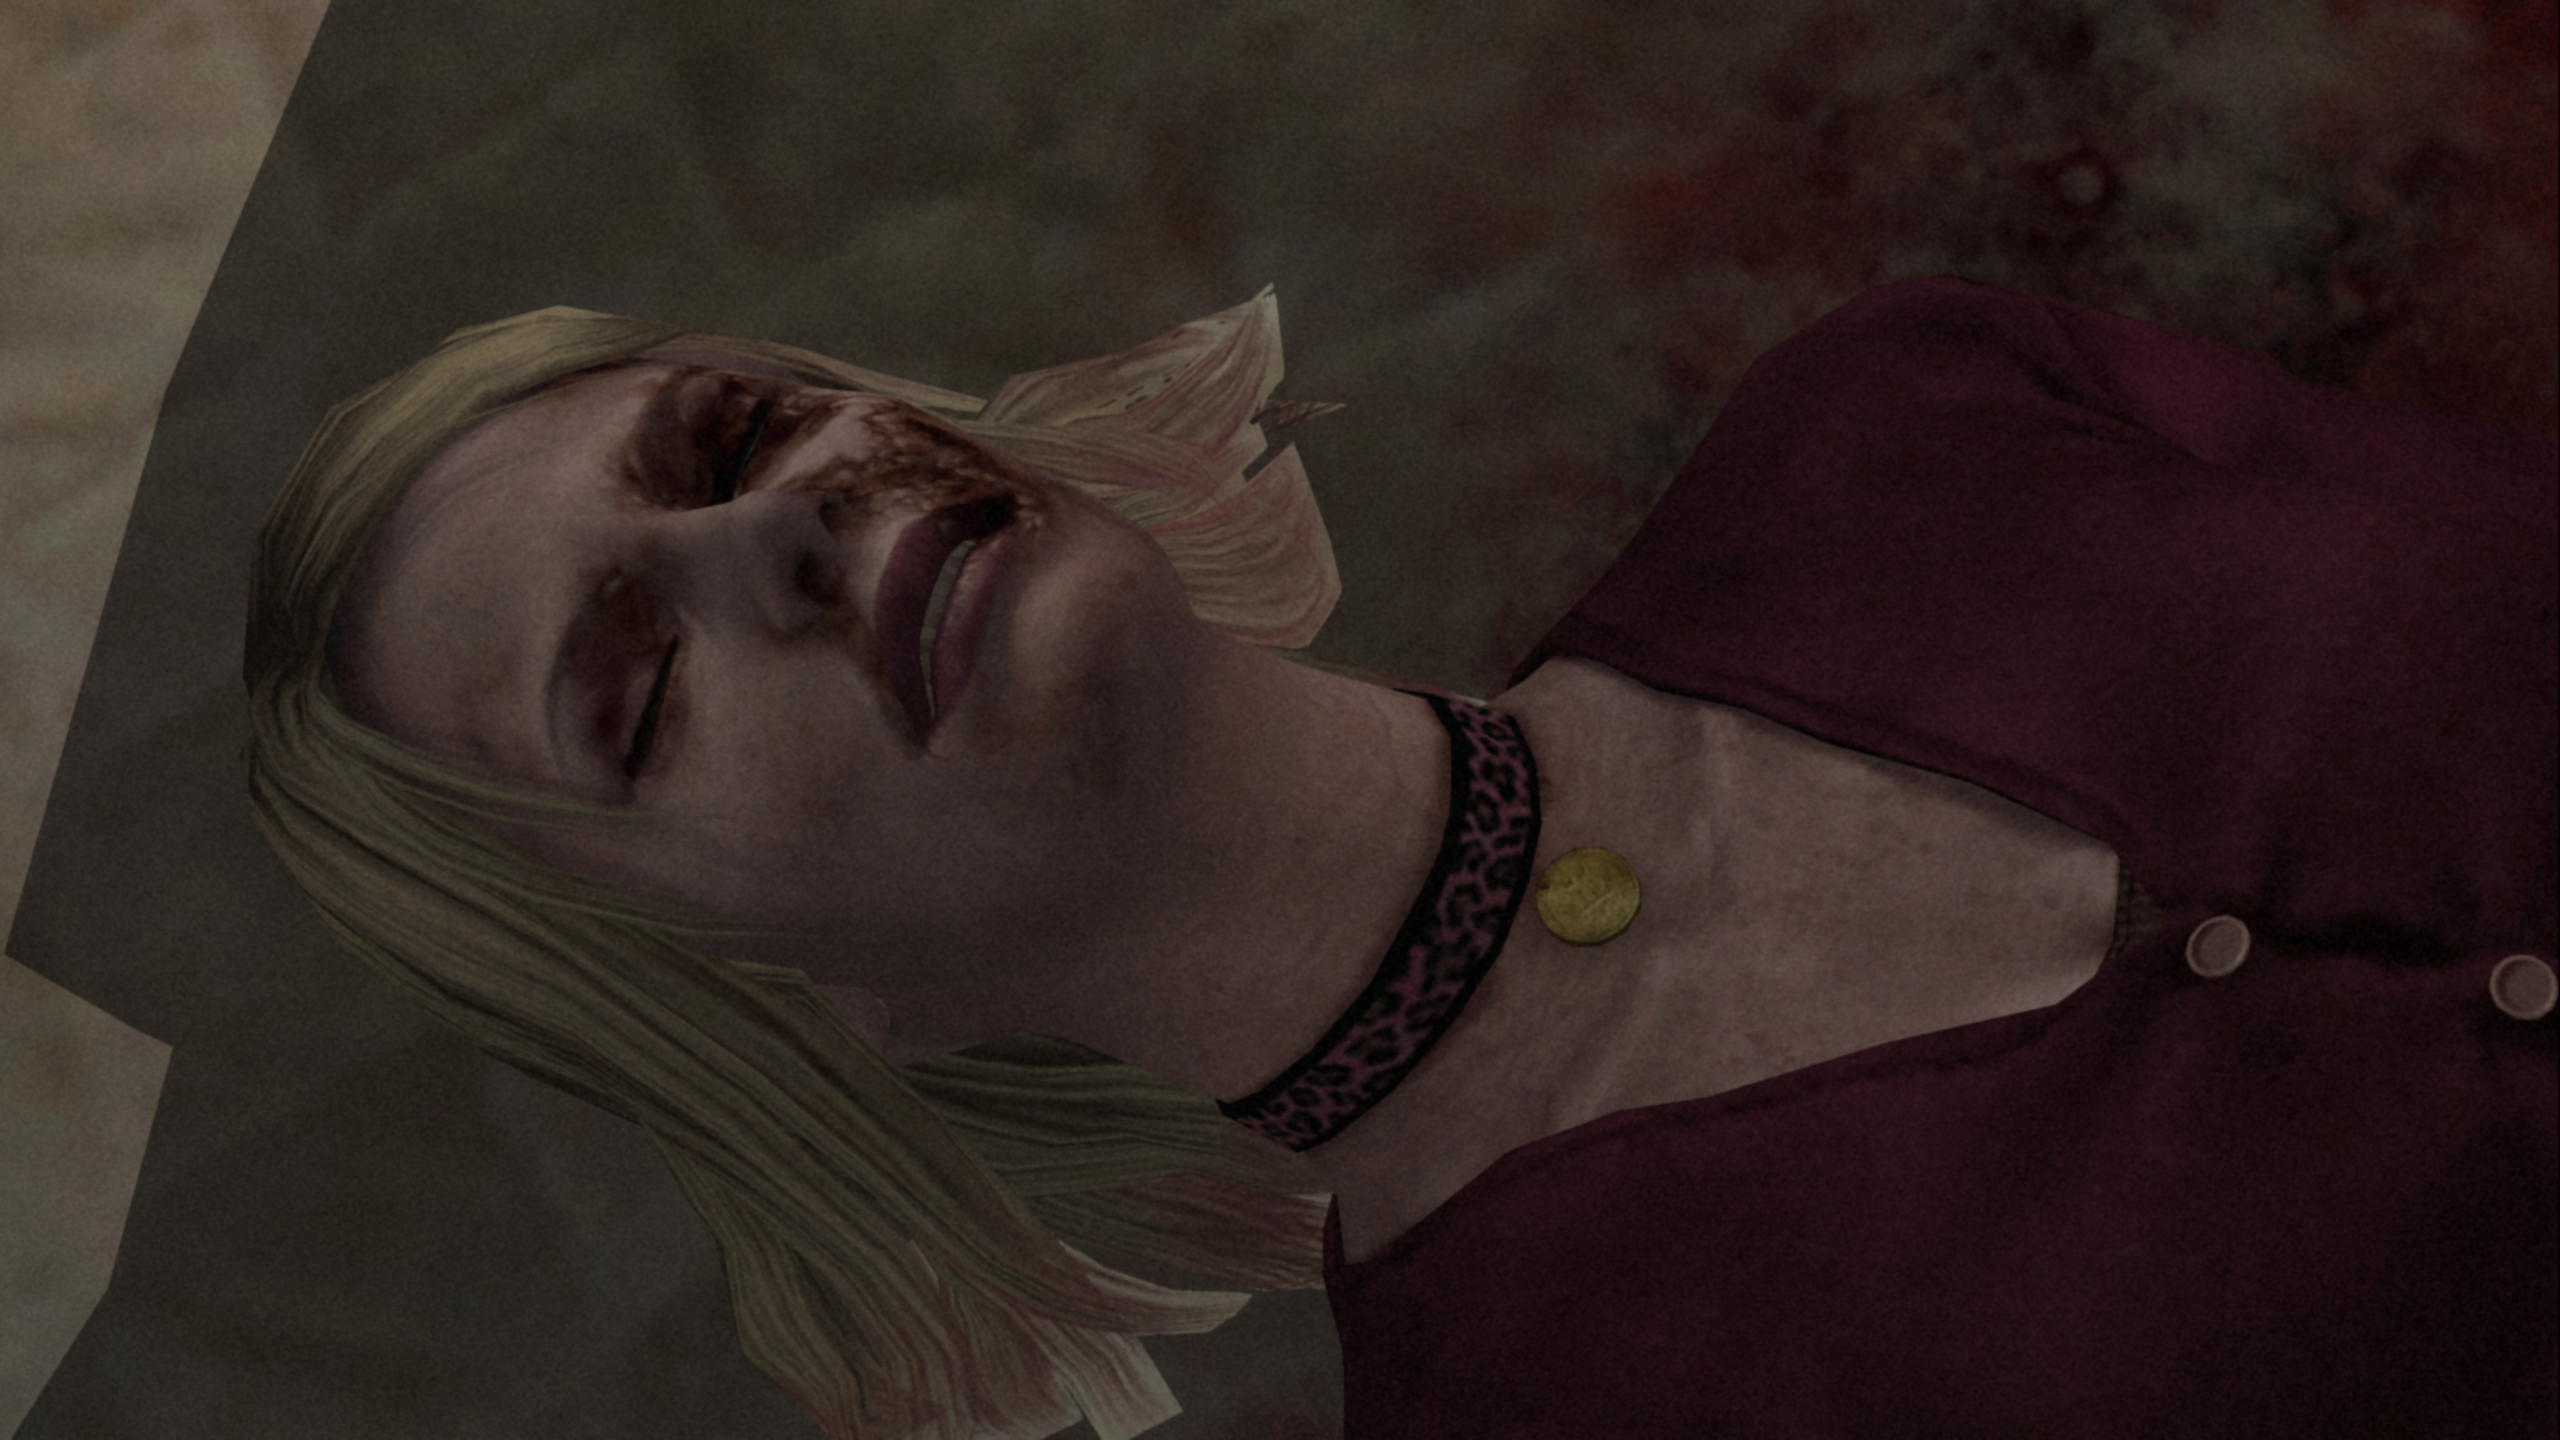 Maria S Hair Not Transparent In A Cutscene Issue 91 Elishacloud Silent Hill 2 Enhancements Github